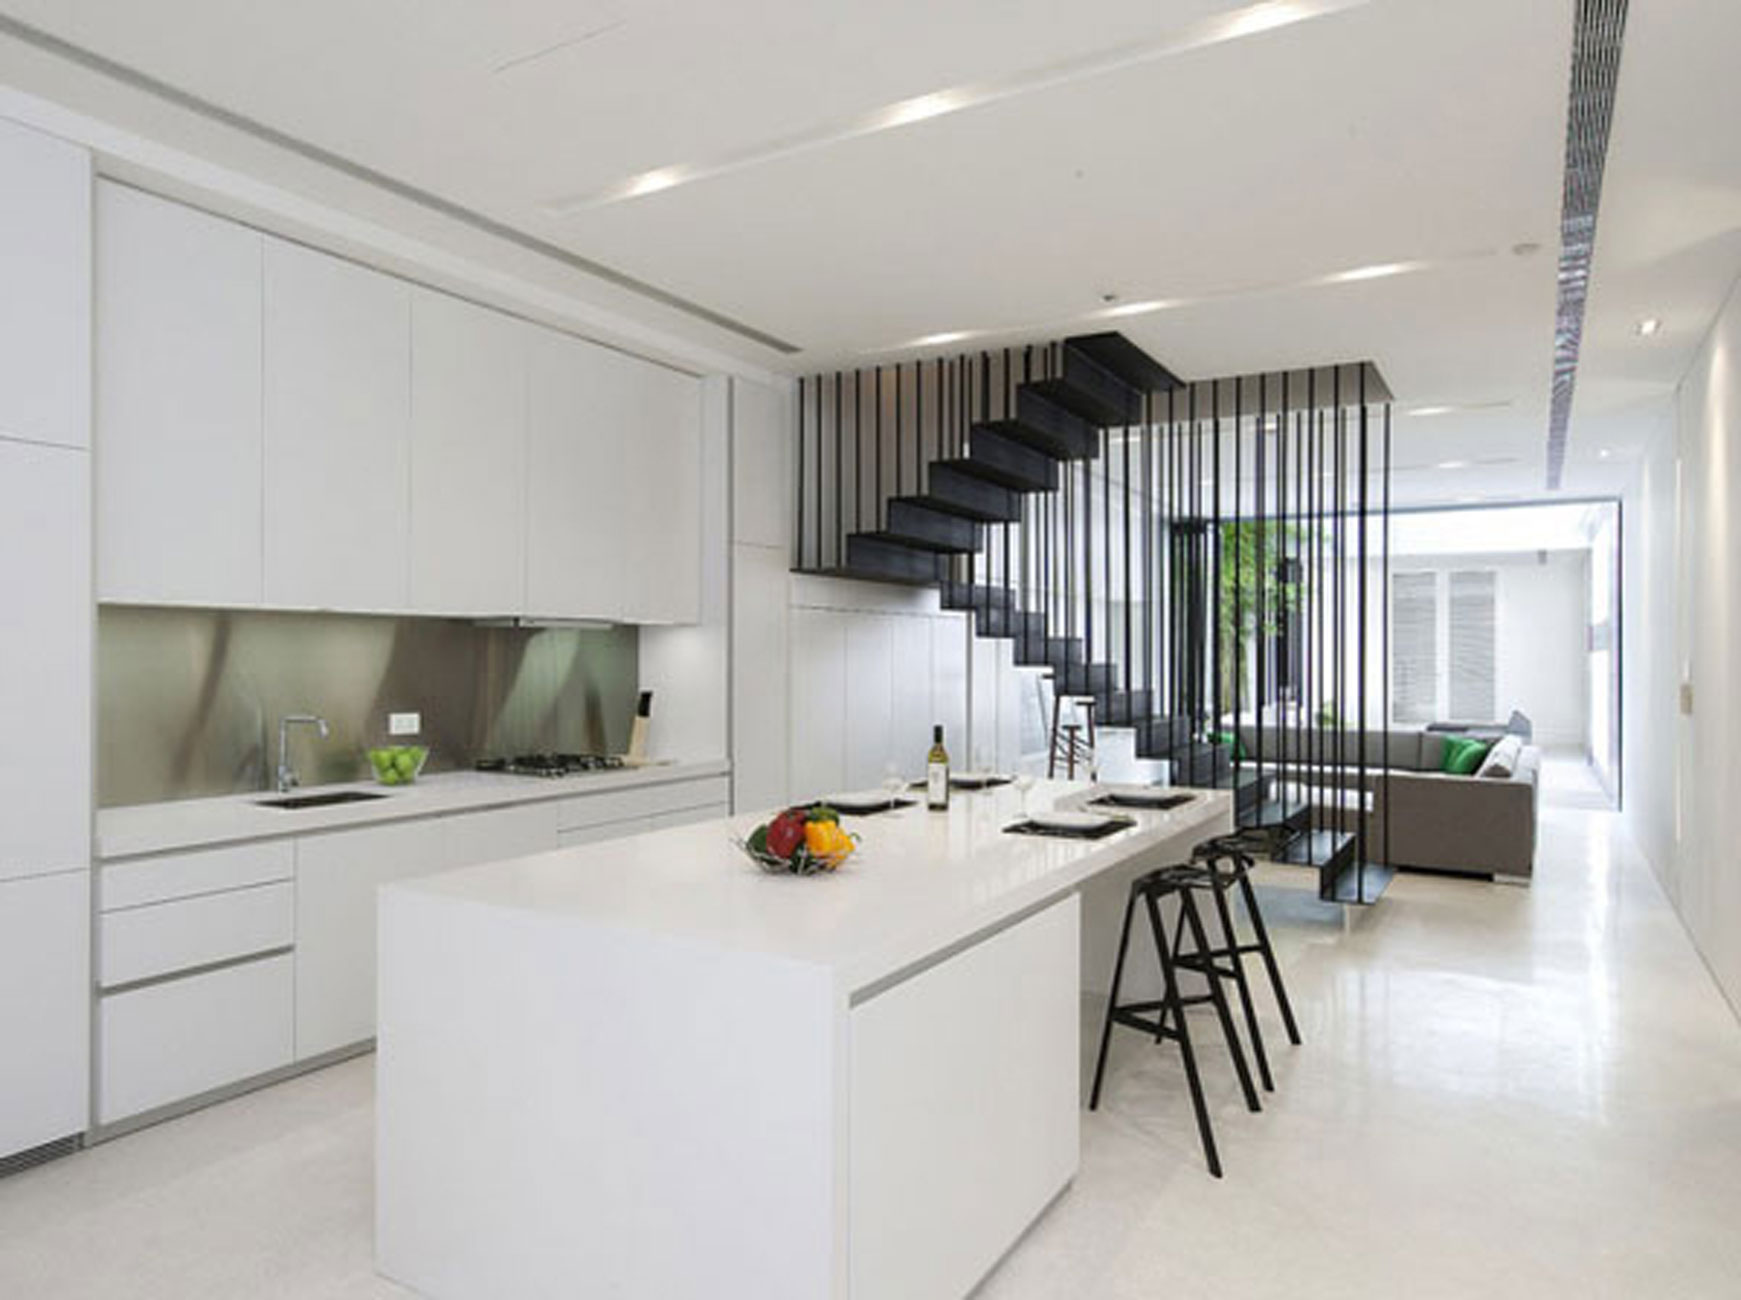 minimalist design of apartment kicthen set with black modern bar stools beside the living room space